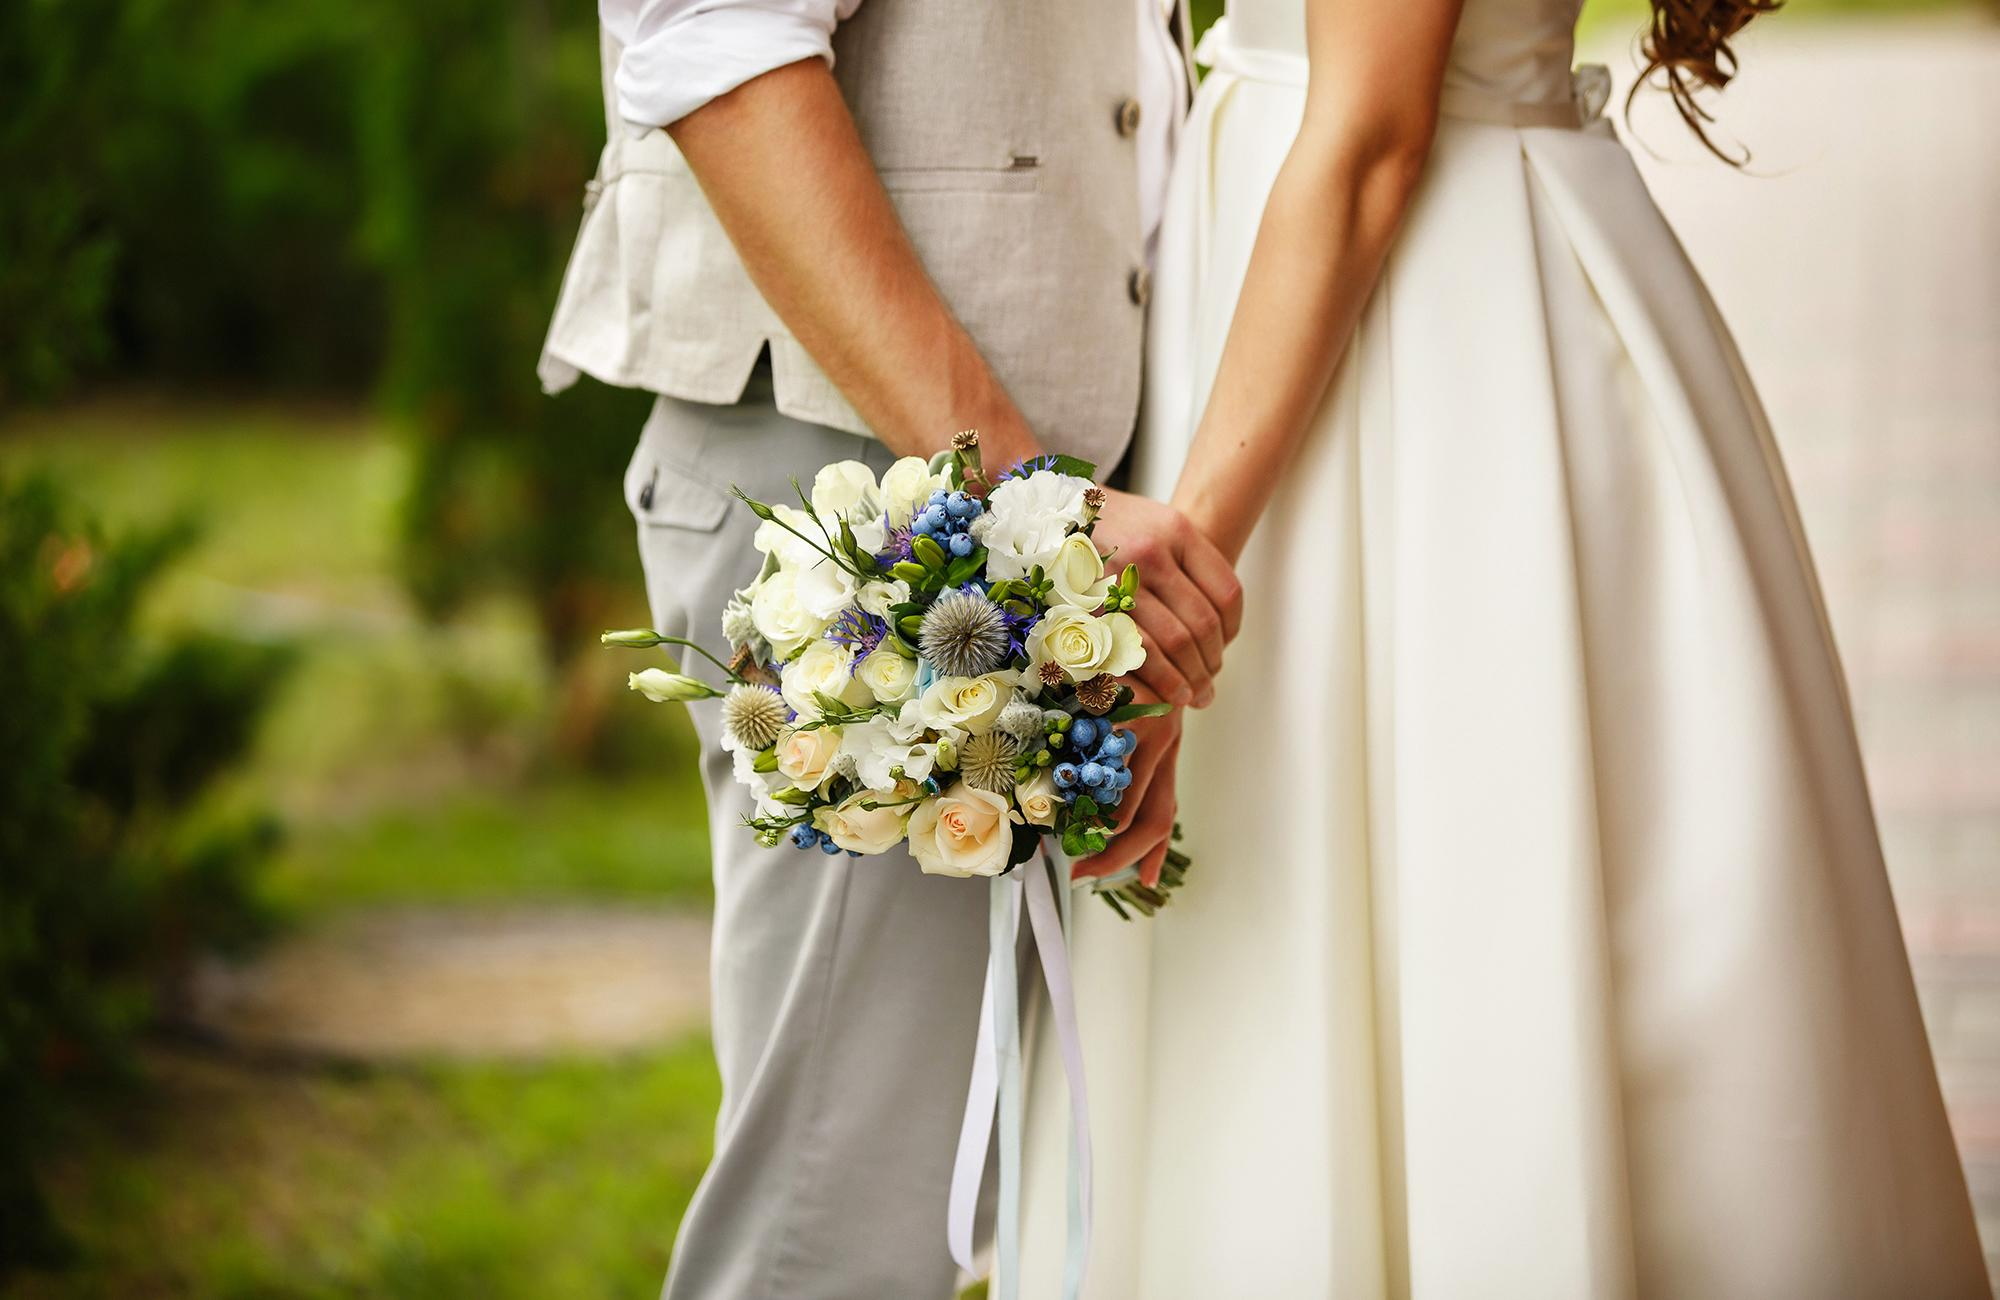 Here Are Some (Often Very Outdated) Wedding Traditions From Around the World